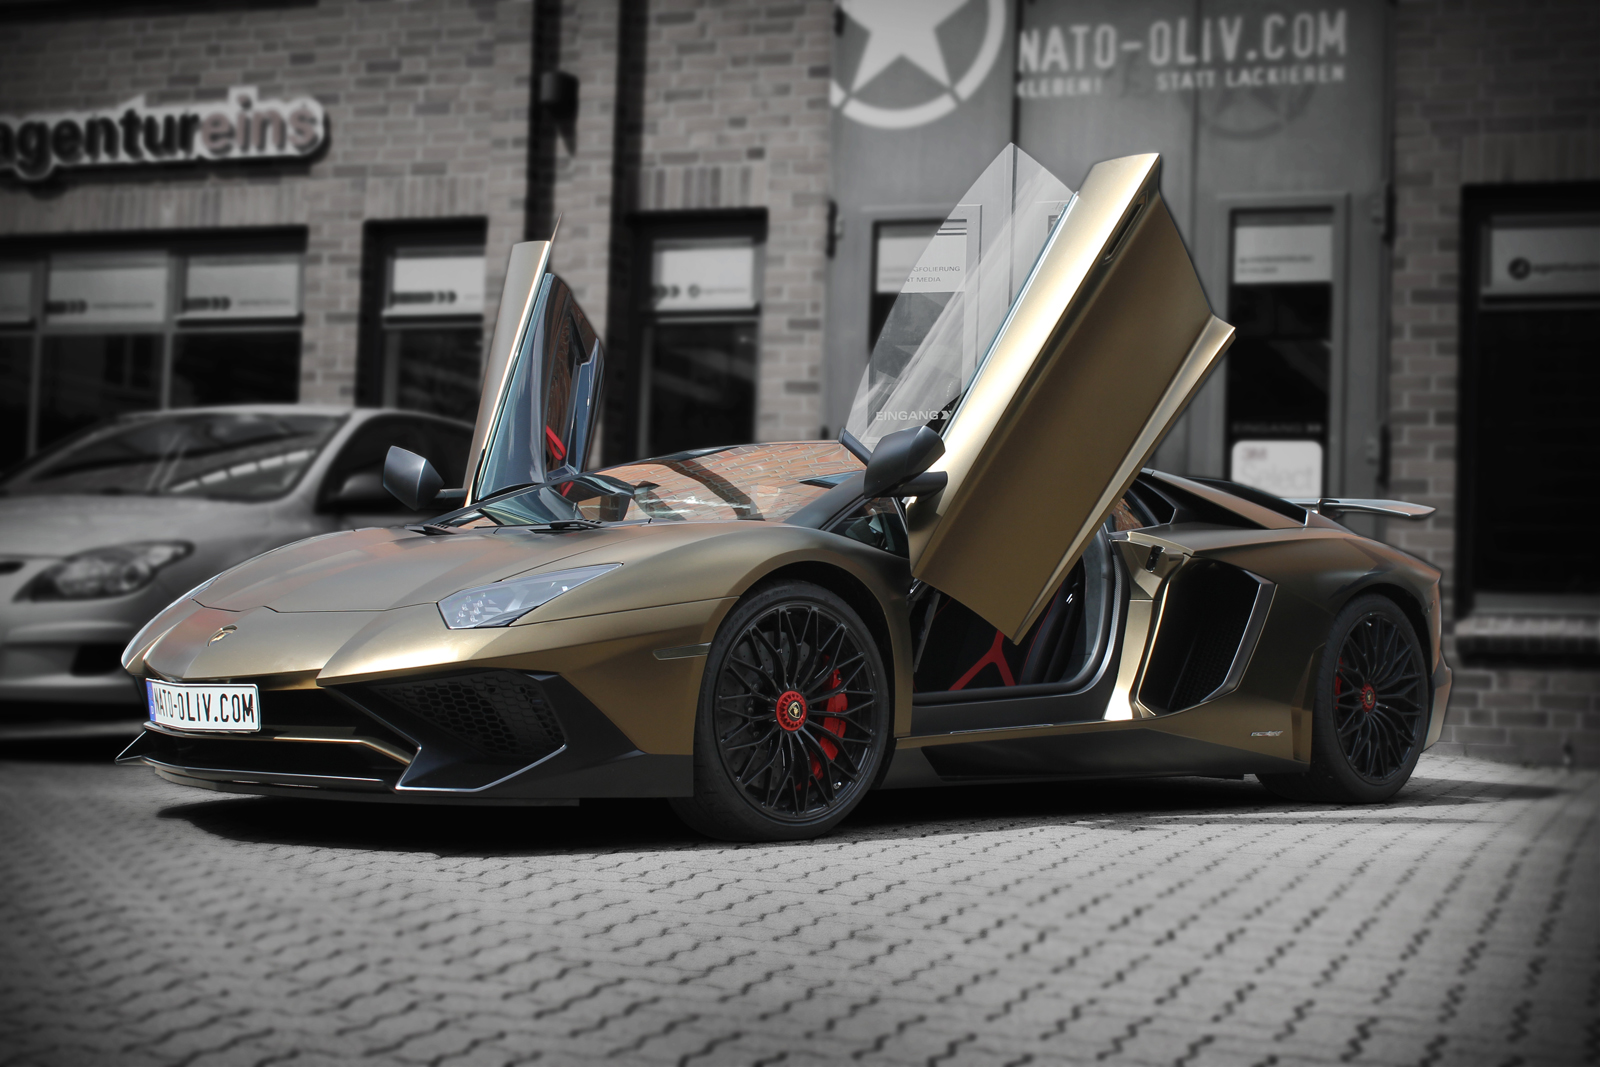 LAMBORGHINI_AVENTADOR_SV_CAR-WRAPPING_BOND_GOLD_TITELBILD